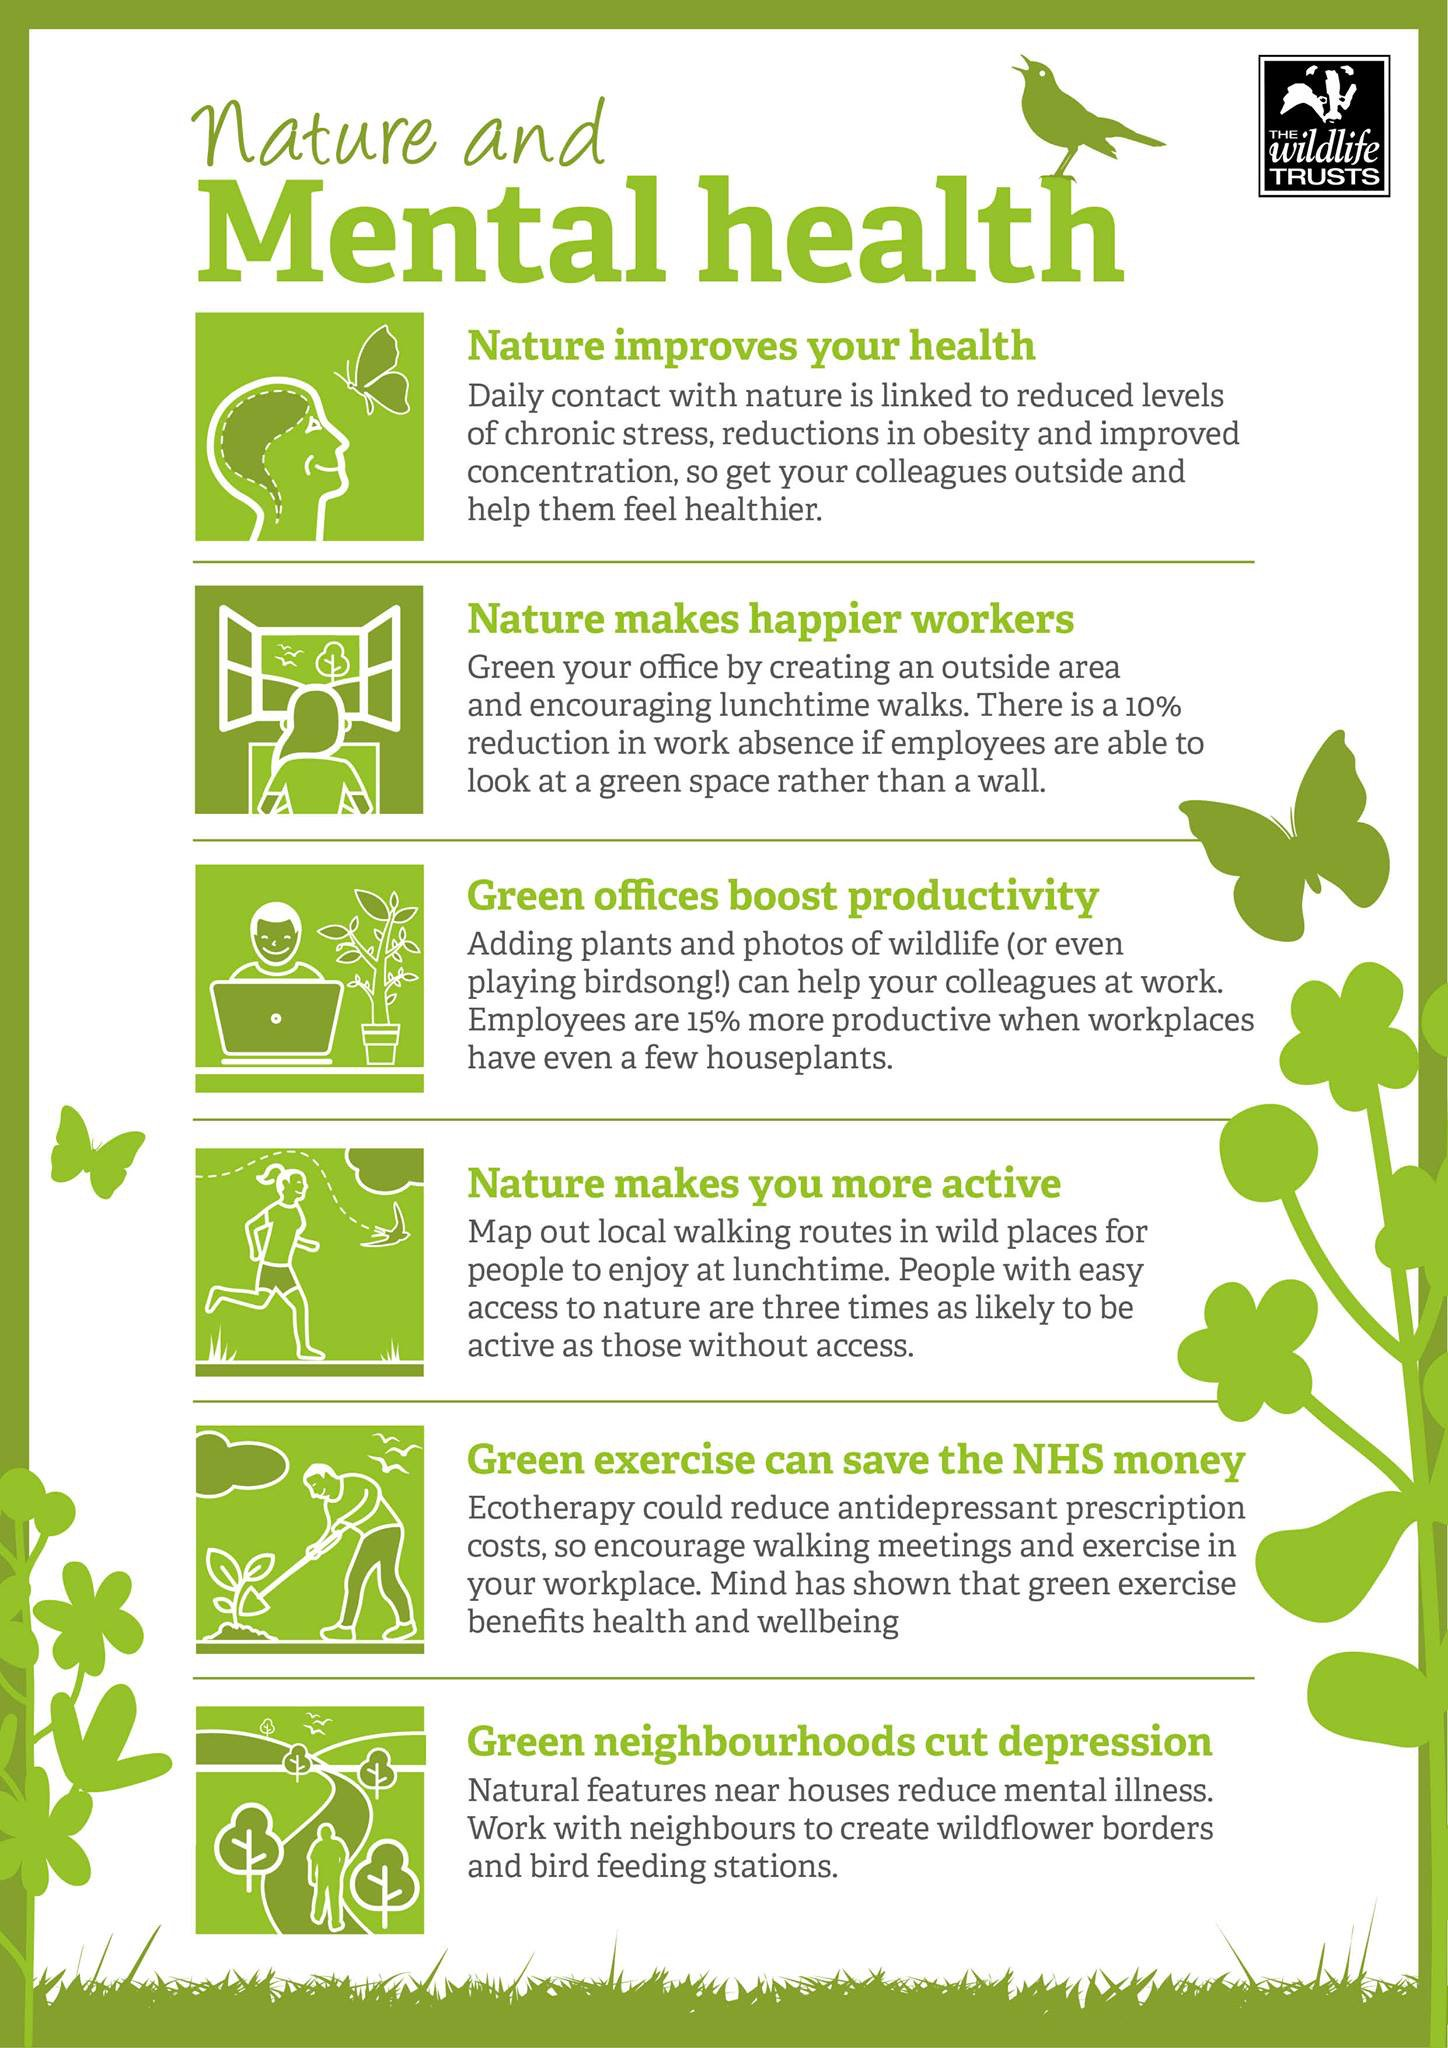 We've been banging on about getting outdoors and enjoying your local parks and green spaces! Well we're glad to say nature helps your mental health too @HMWTBadger #HertsYOPA18 #MentalHealth https://t.co/AbZ0SFd4LB